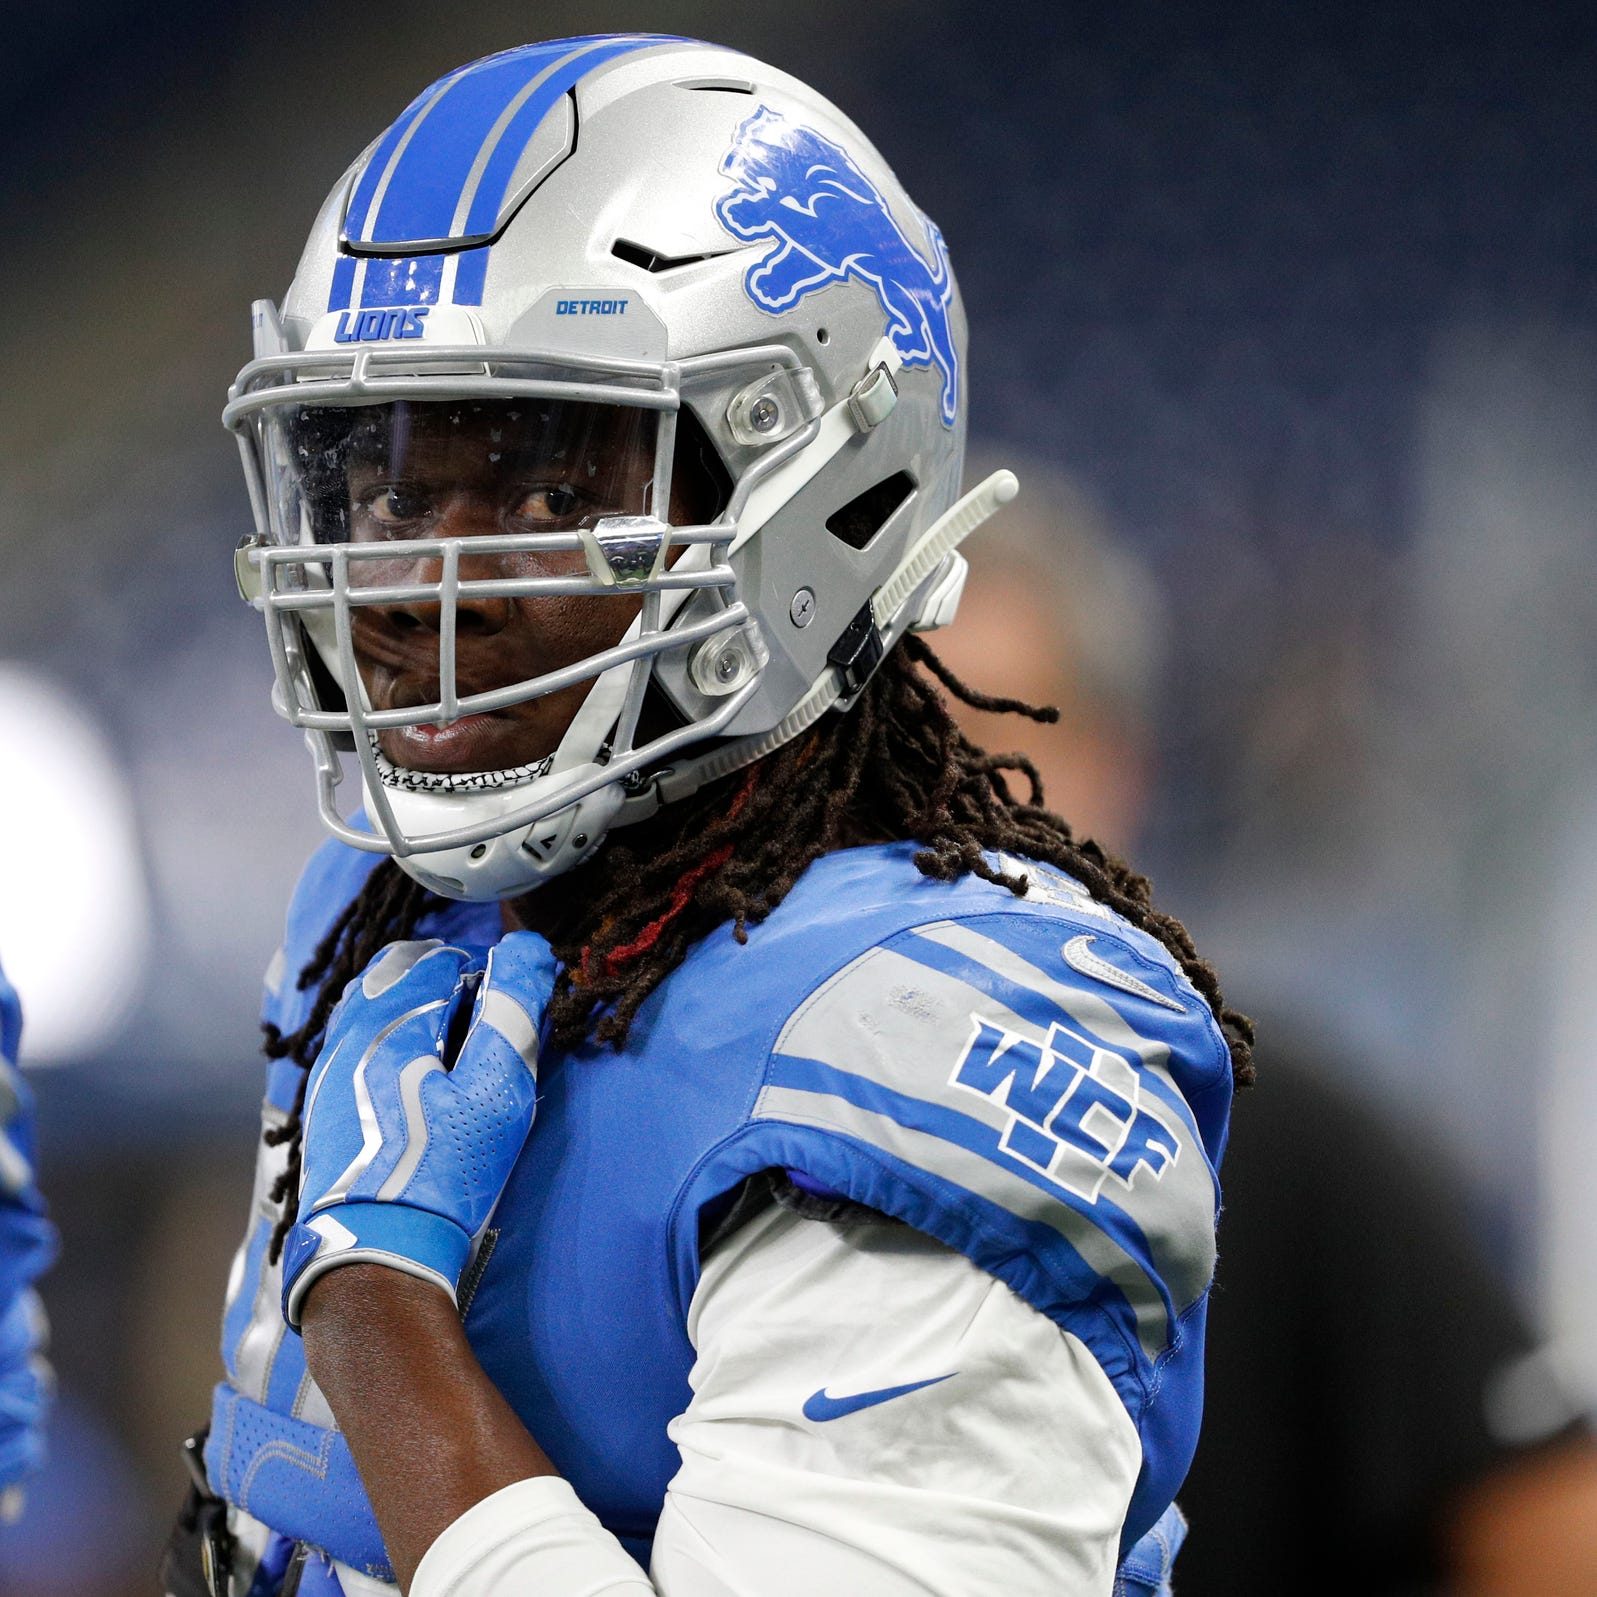 Lions' Ziggy Ansah: I wouldn't wish what I've gone through on anybody